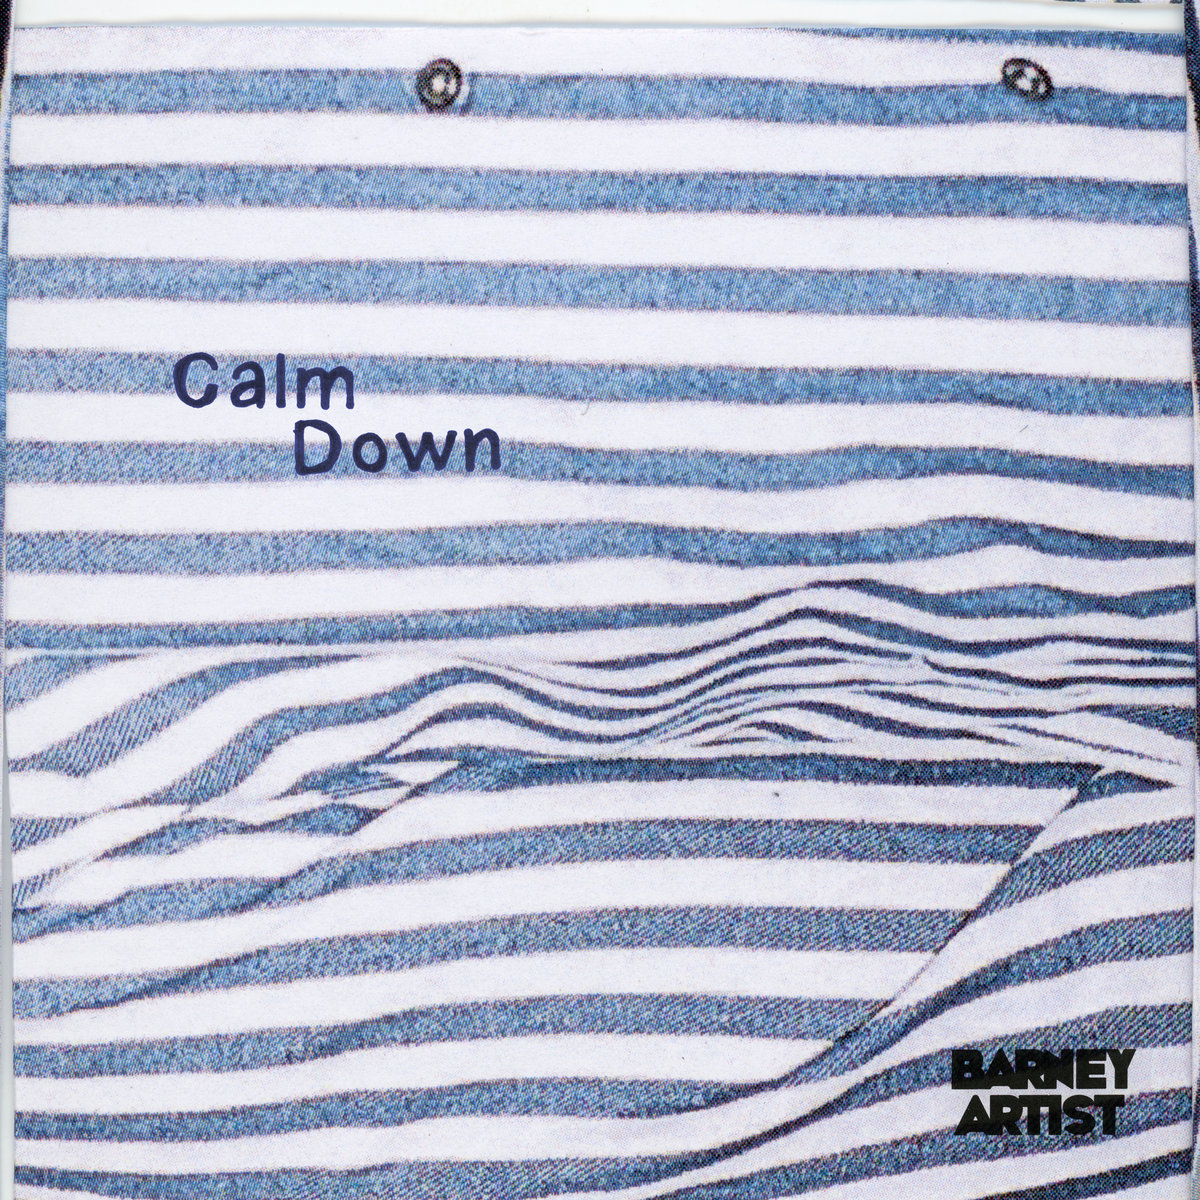 Calm Down | barneyartist